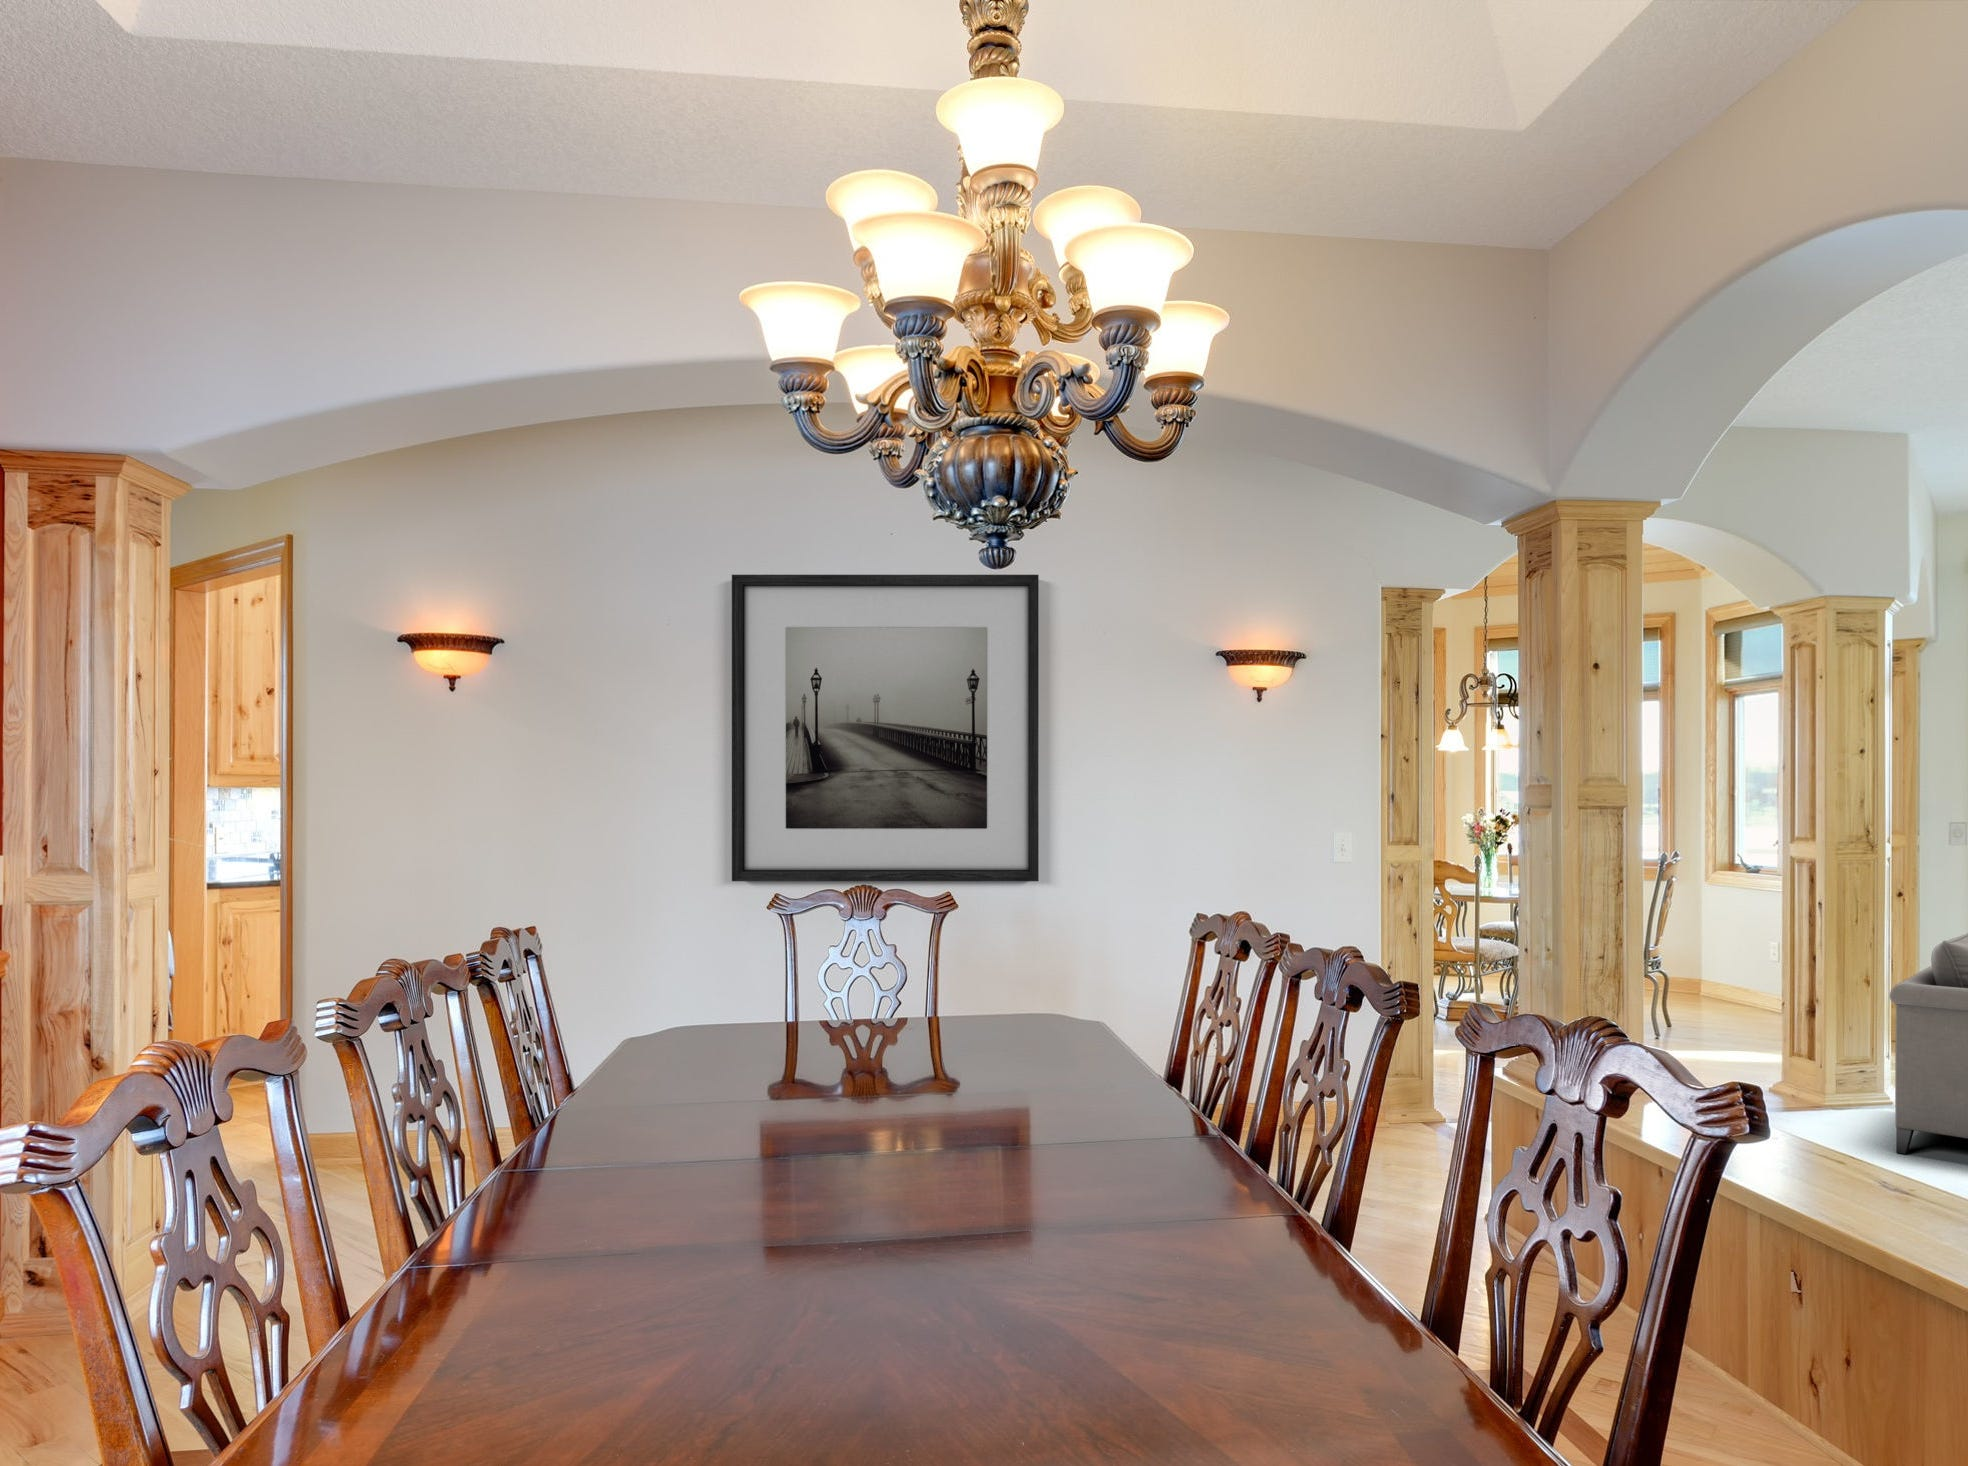 The living room is open to the formal dining area which has enough space to entertain large groups.